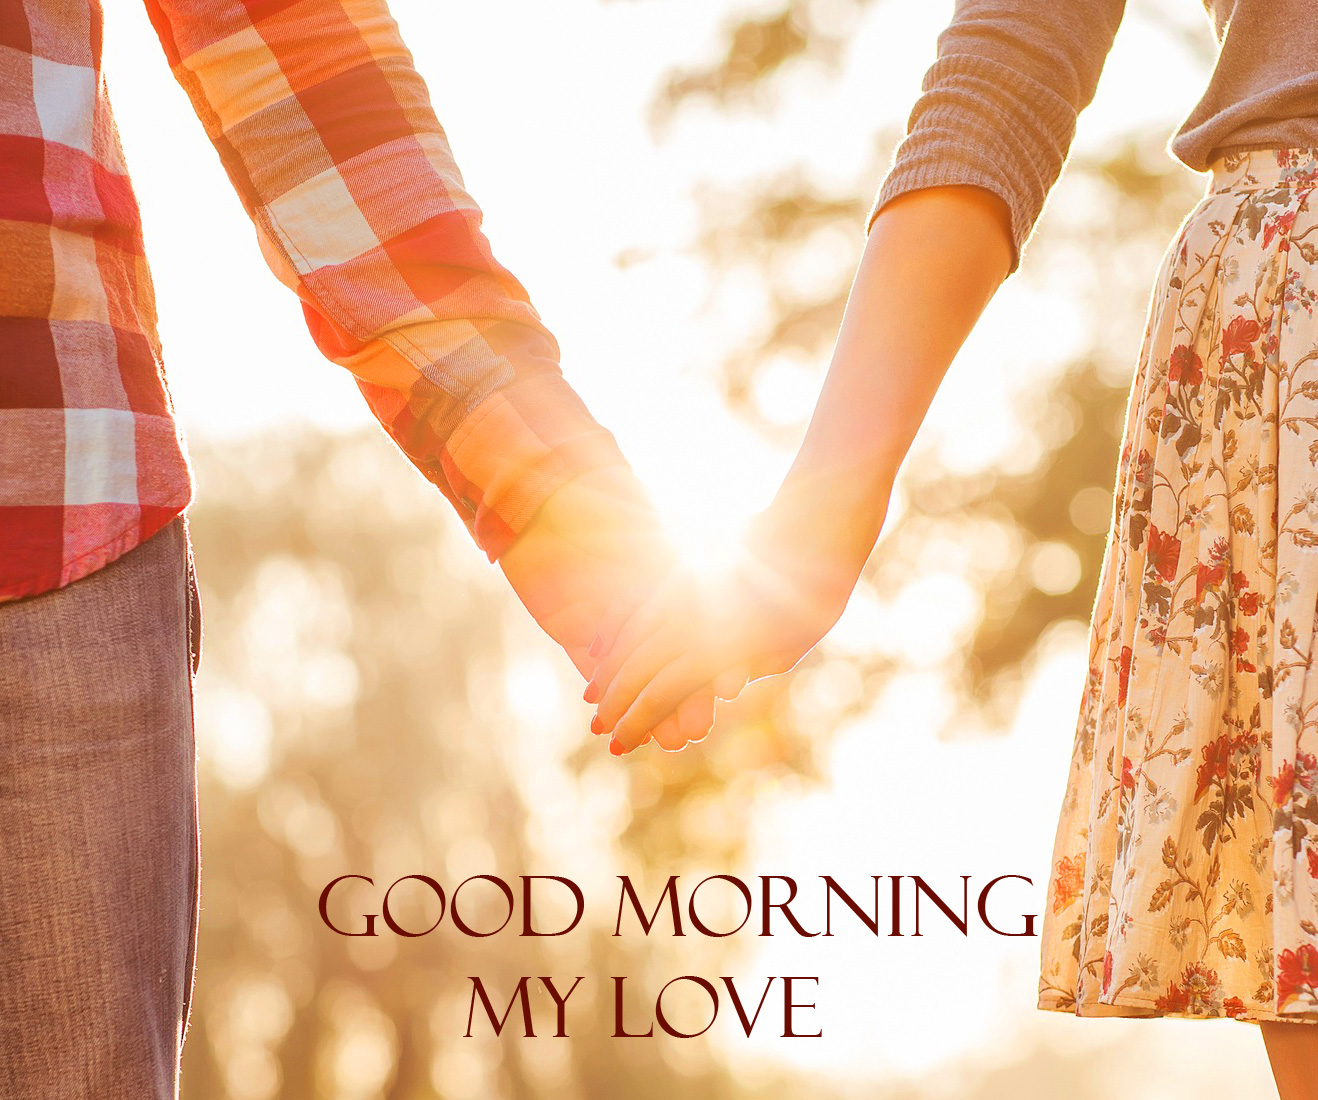 Young Couple Good Morning My Love Image